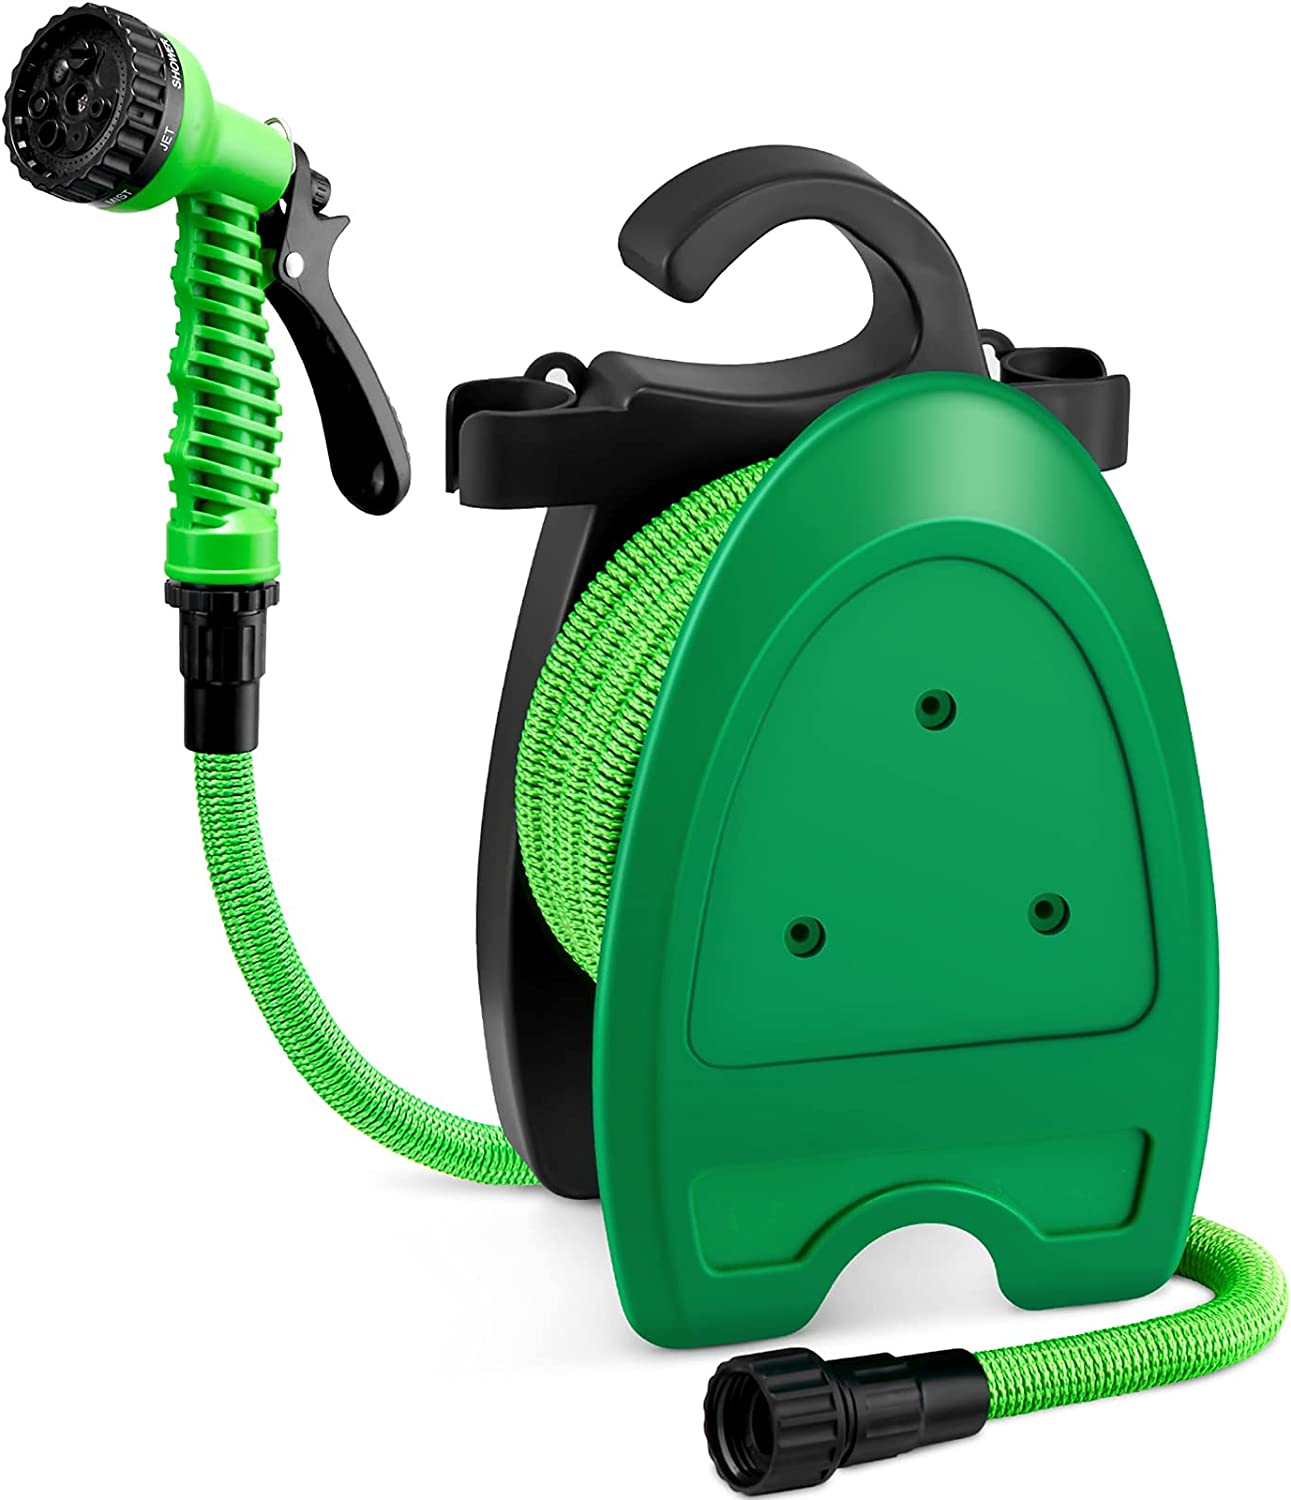 Gesentur Expandable Garden Hose, 50FT Lightweight Water Hose with 7 Function Spray Nozzle & 3/4